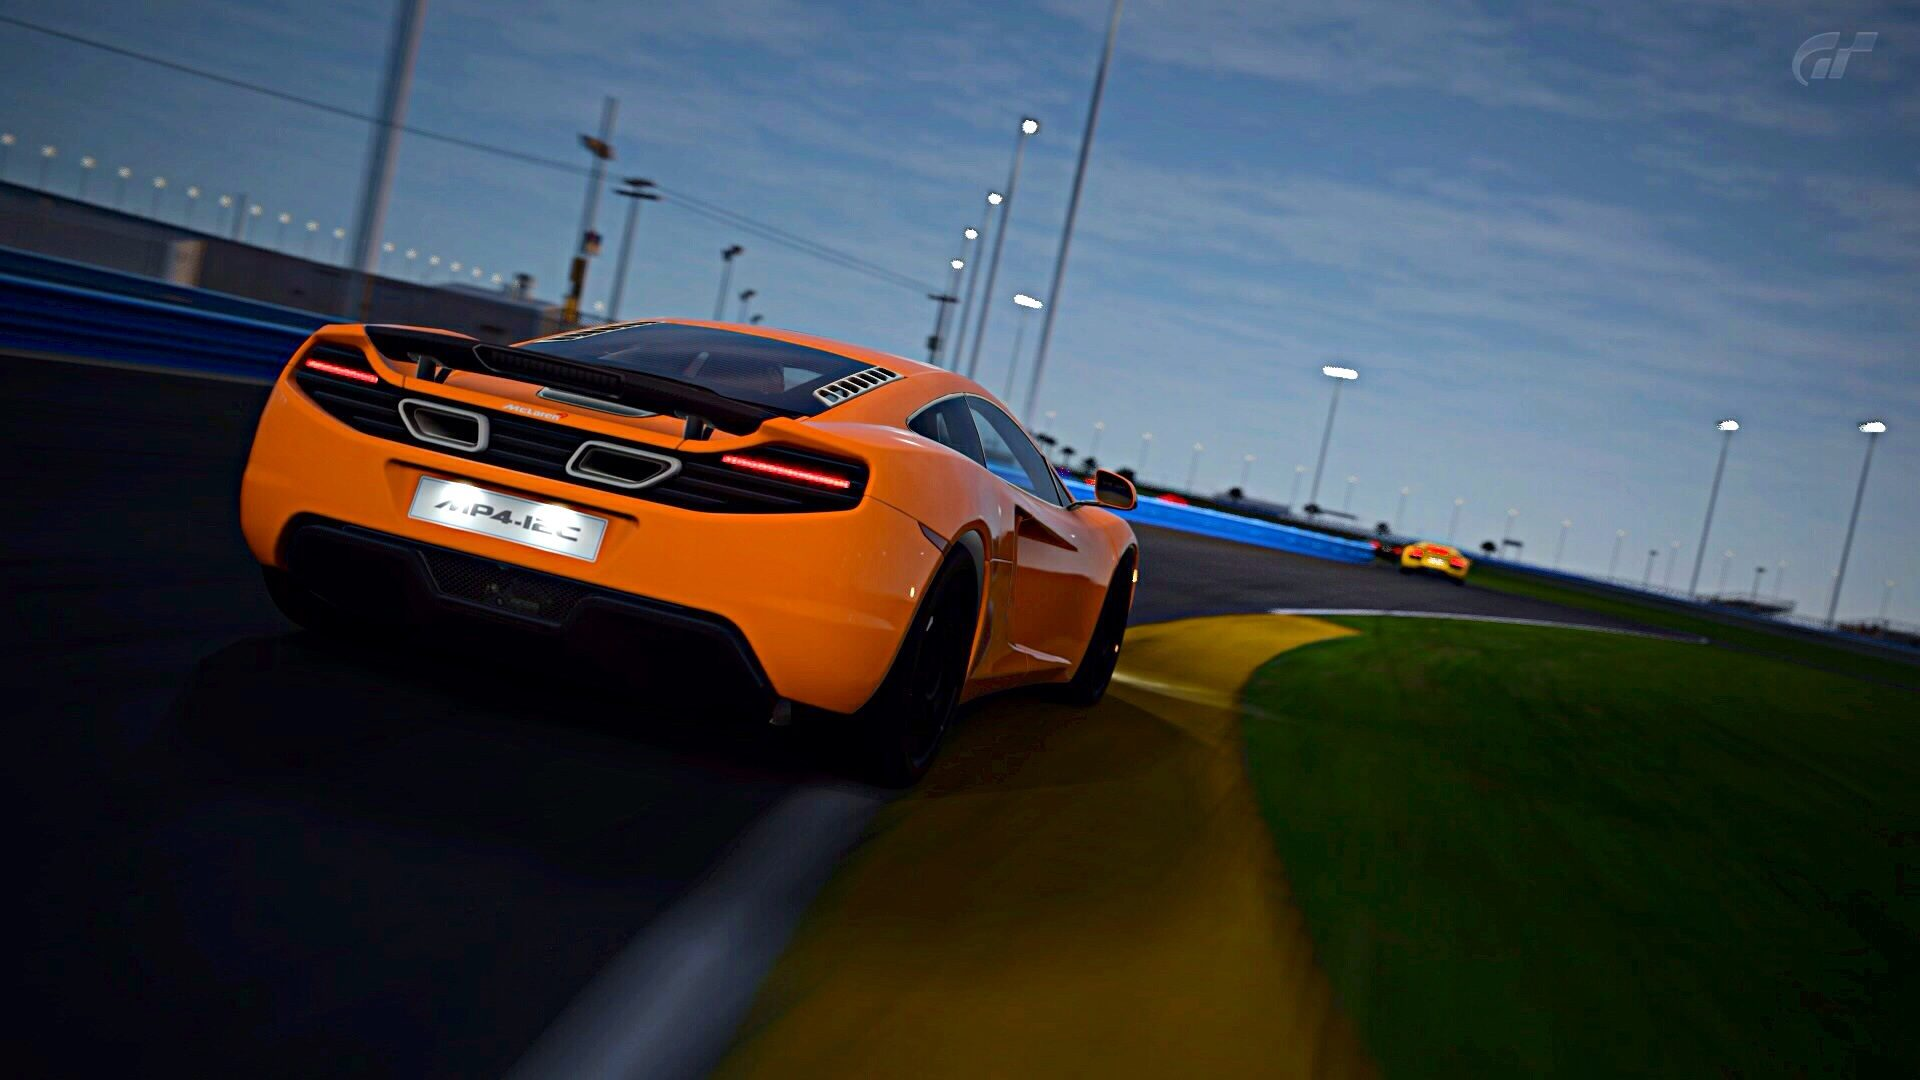 MP4-12C GTC Daytona Road Course (5).jpg